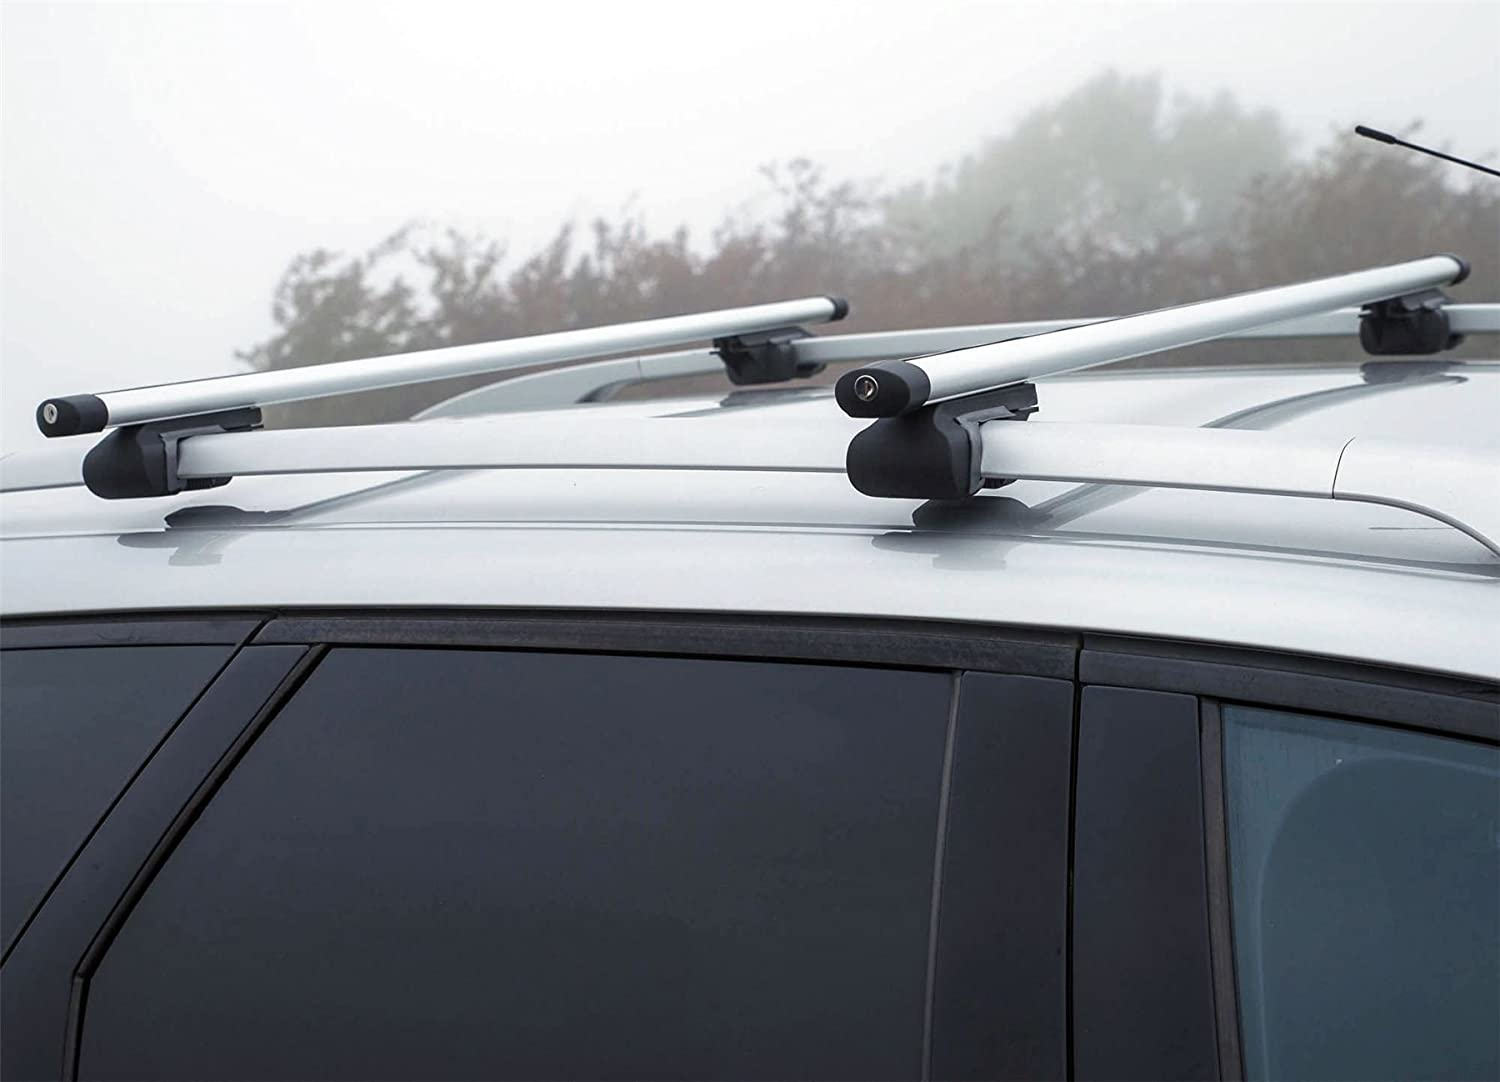 UKB4C Aluminium Roof Rack Cross Bars fits Citroen C3 Picasso 2009-2016 5 Door